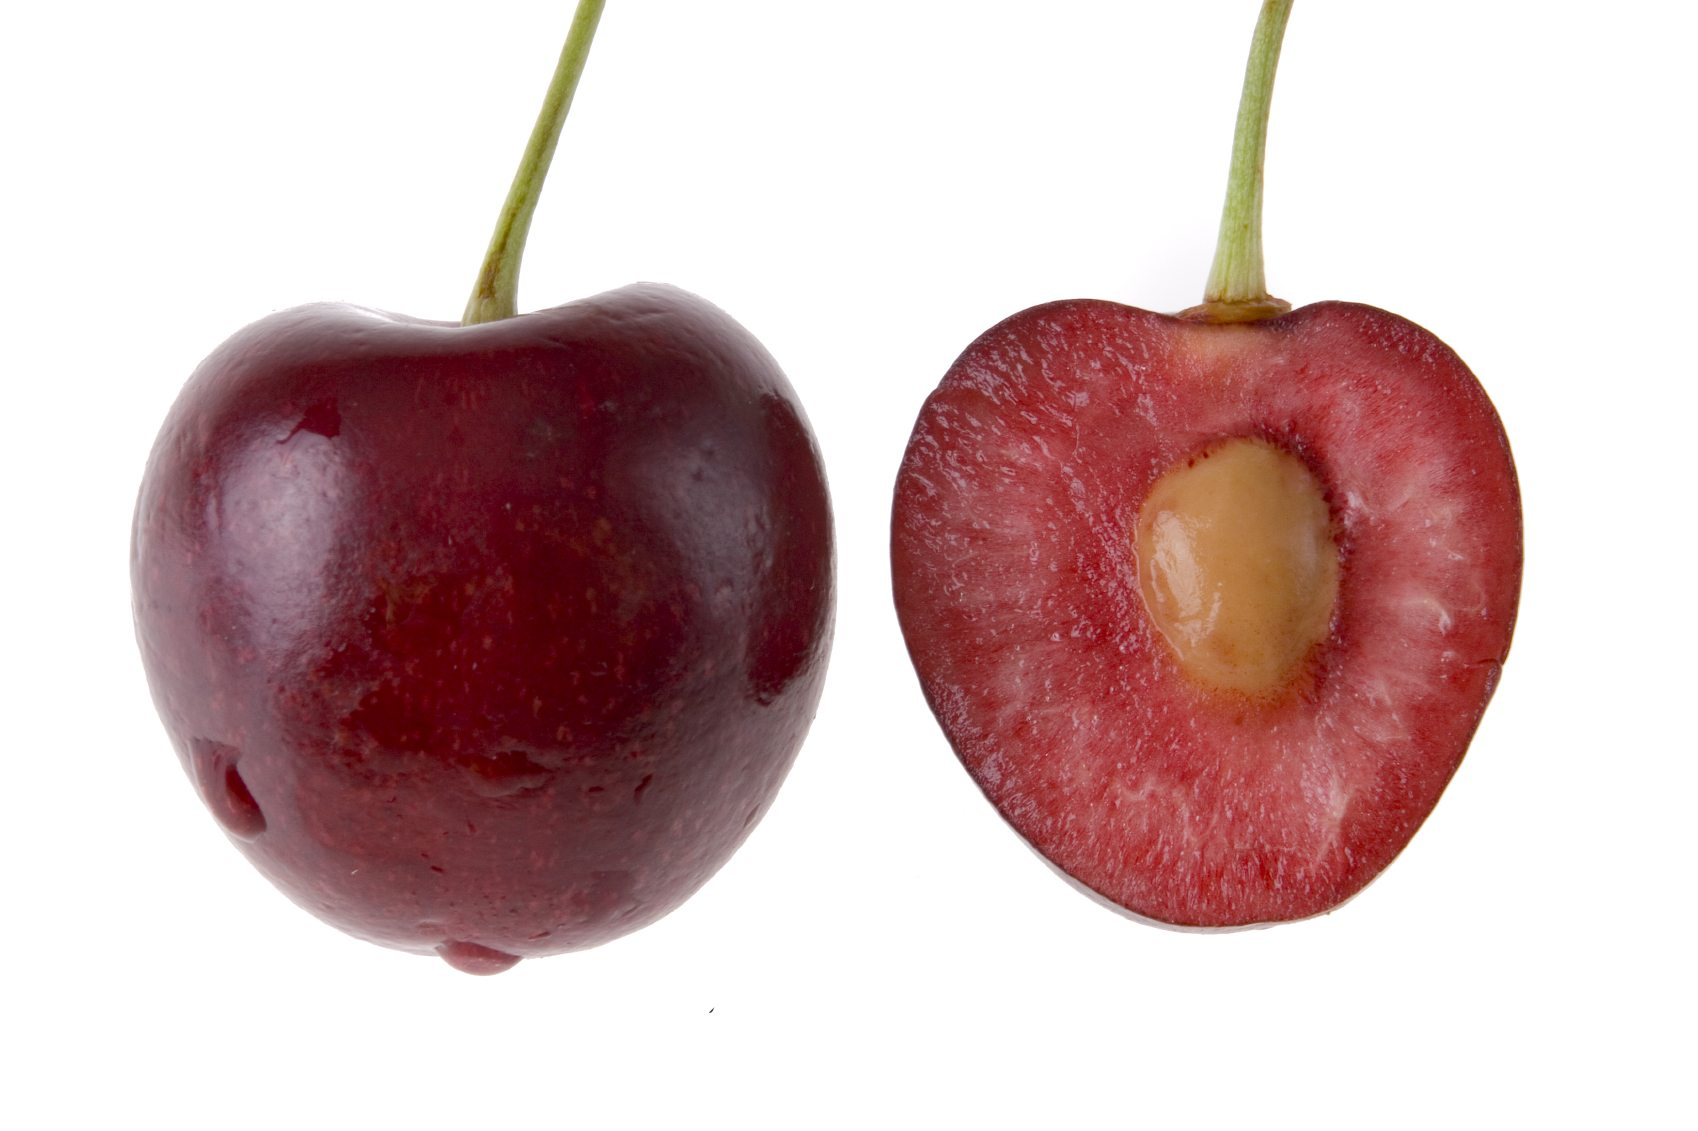 Seed Planting Cherry Trees How To Grow Cherry Trees From Pits